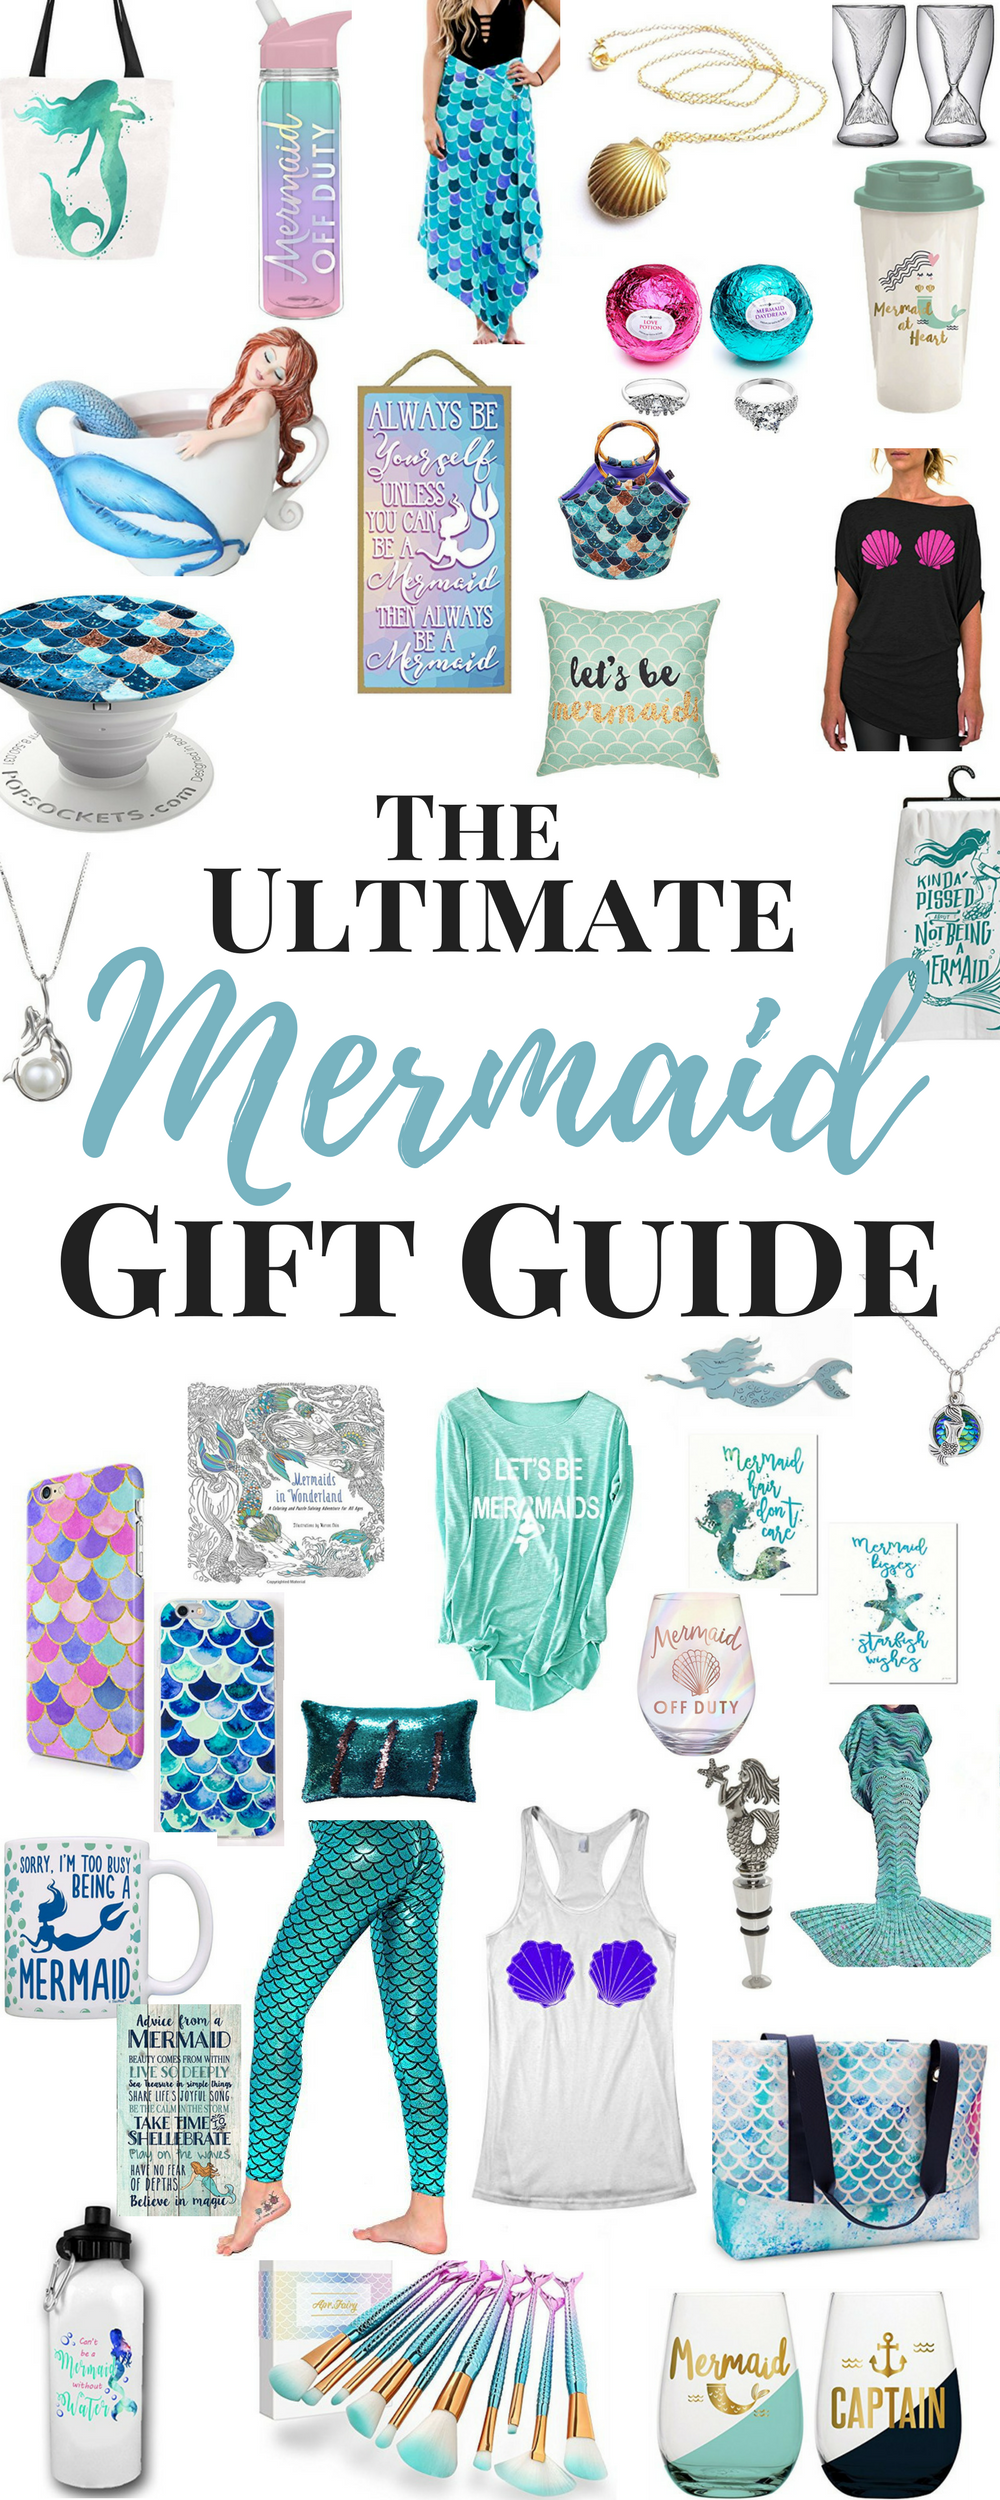 Mermaid Gifts - Here are some great Mermaid Gift Ideas for the Mermaid Lover on your list.  and these are also Mermaid gifts for adults! Bring these awesome Mermaid Gifts to your next Mermaid Party!